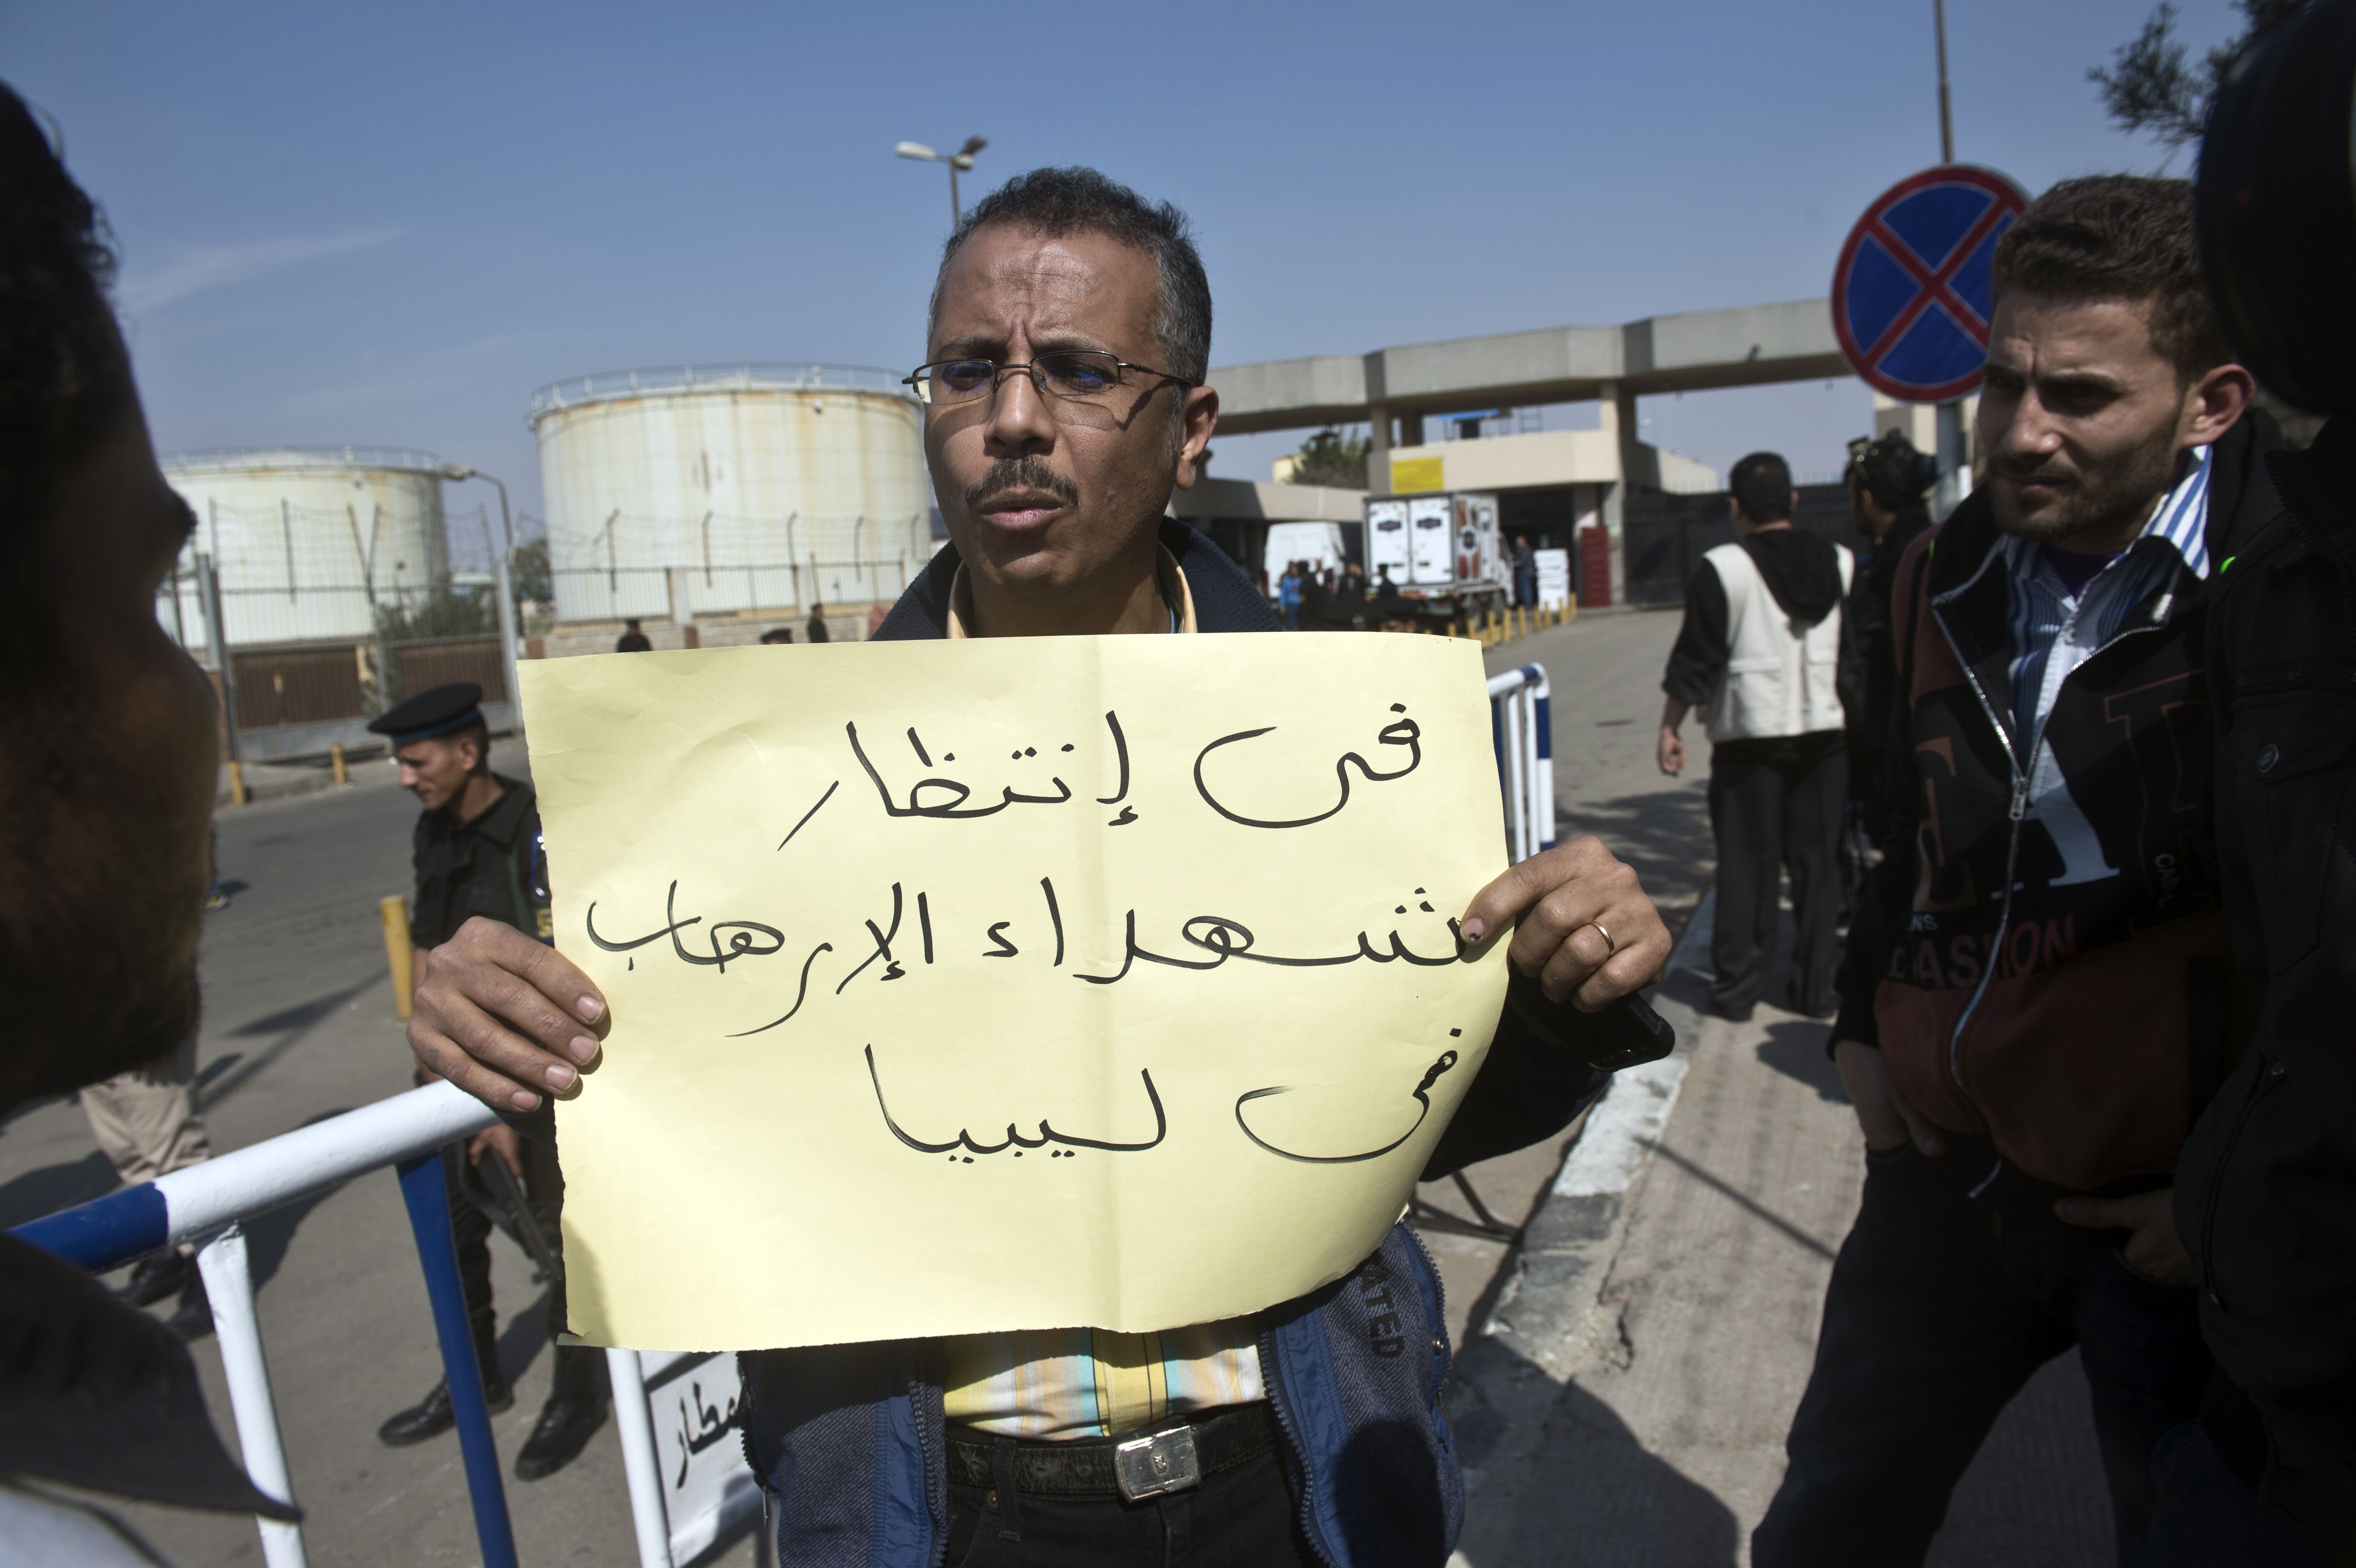 """An Egyptian man holds a sign reading in Arabic: """"waiting for martyrs of terrorism in Libya"""" as ambulances drive out of Cairo international airport on February 26, 2014, carrying the bodies of seven Egyptian victims who were found shot dead  in Jalluta, near Benghazi in eastern Libya, the previous day.  The victims were kidnapped from their home late on February 23, by an unknown group, an Egyptian foreign ministry spokesman said, adding that eight men had been taken originally but one escaped by throwing himself from his abductors' car. (AFP PHOTO / KHALED DESOUKI)"""